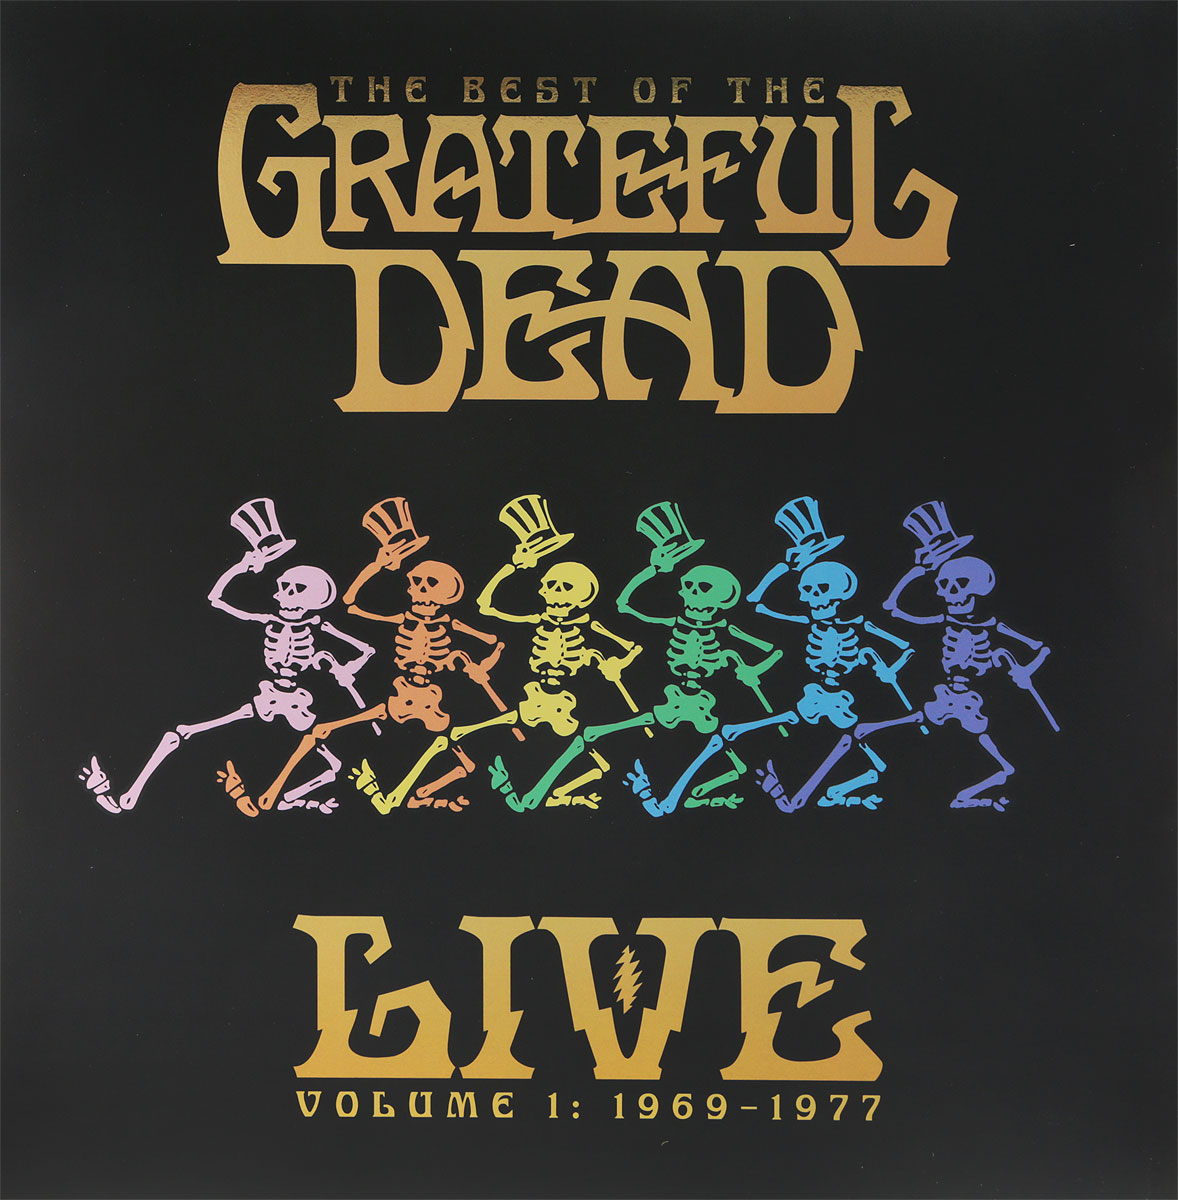 The Grateful Dead The Grateful Dead. The Best Of The Grateful Dead. Live. Volume 1: 1969-1977 (2 LP) seun odumbo a grateful heart